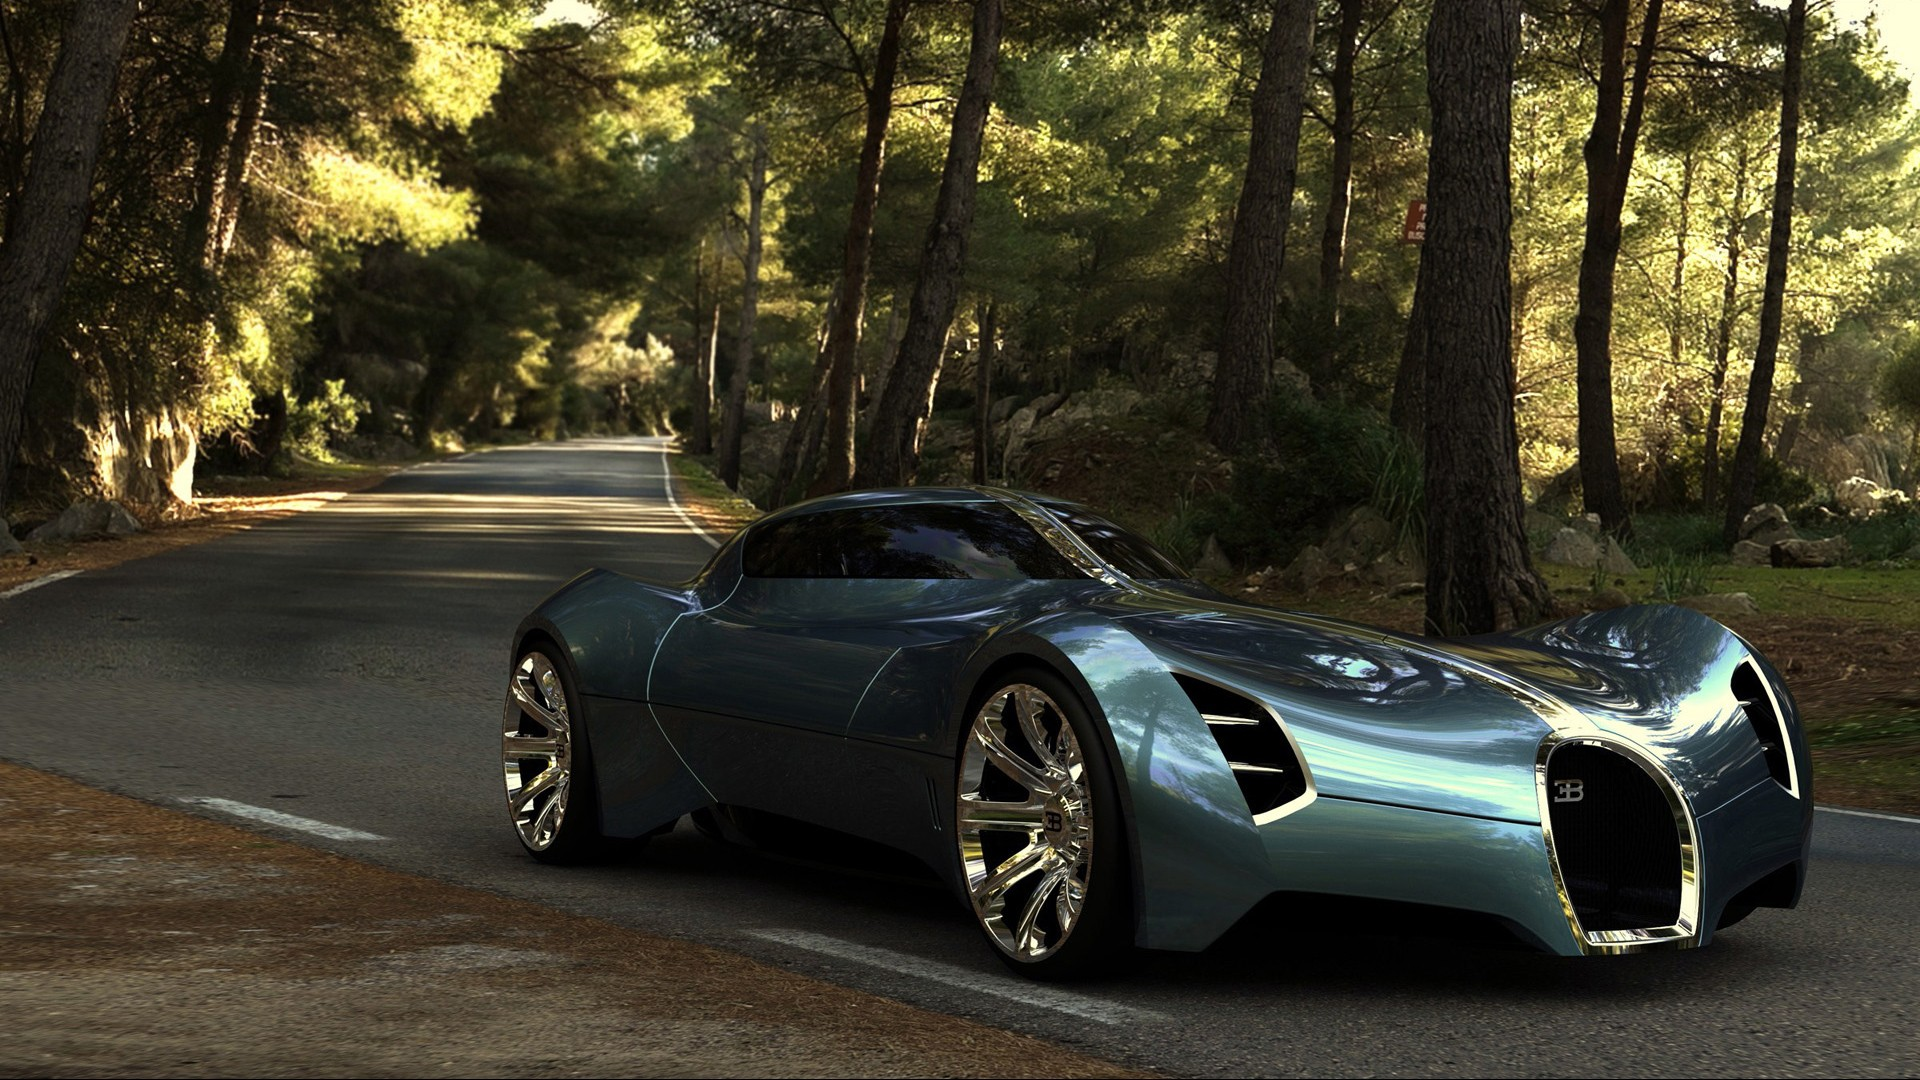 concept car hd wallpaper - photo #8